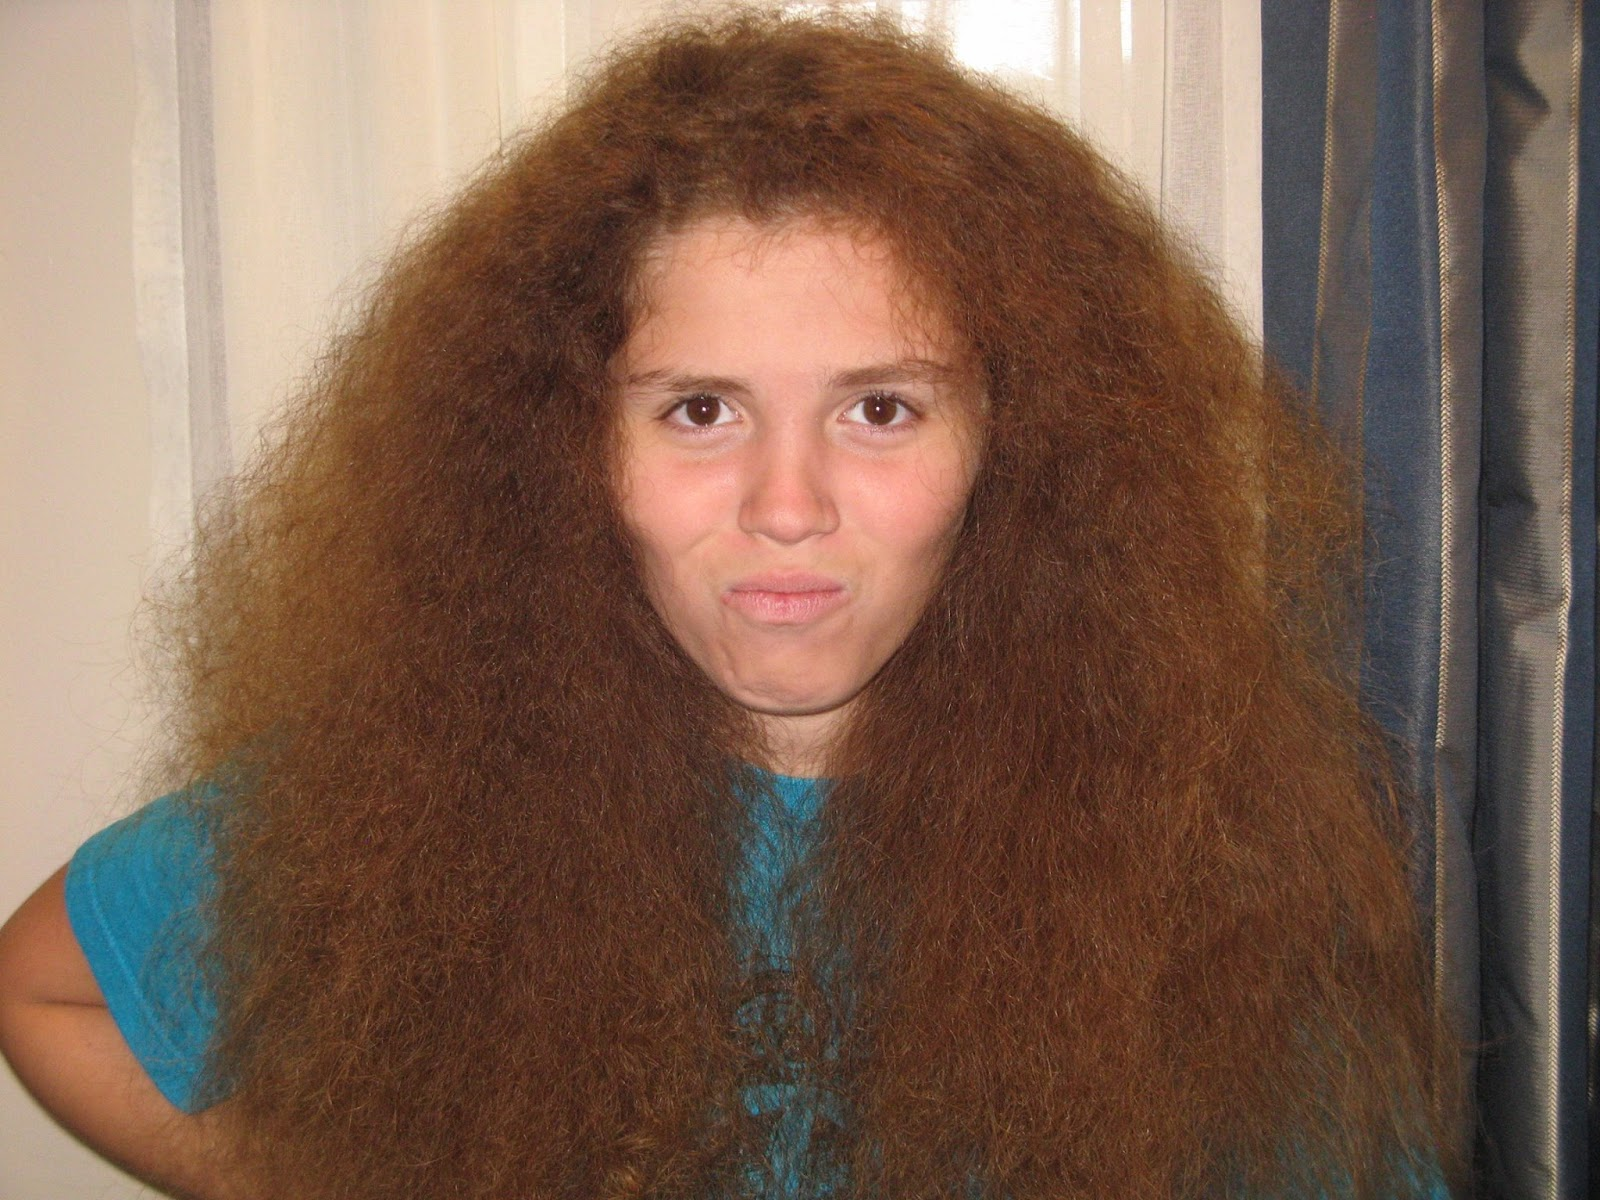 This Is The Curly Hair After Getting A Good Conditioning And Ironing It She Liked Her Long But To Was Too Much Maintenance Paloma Does Not